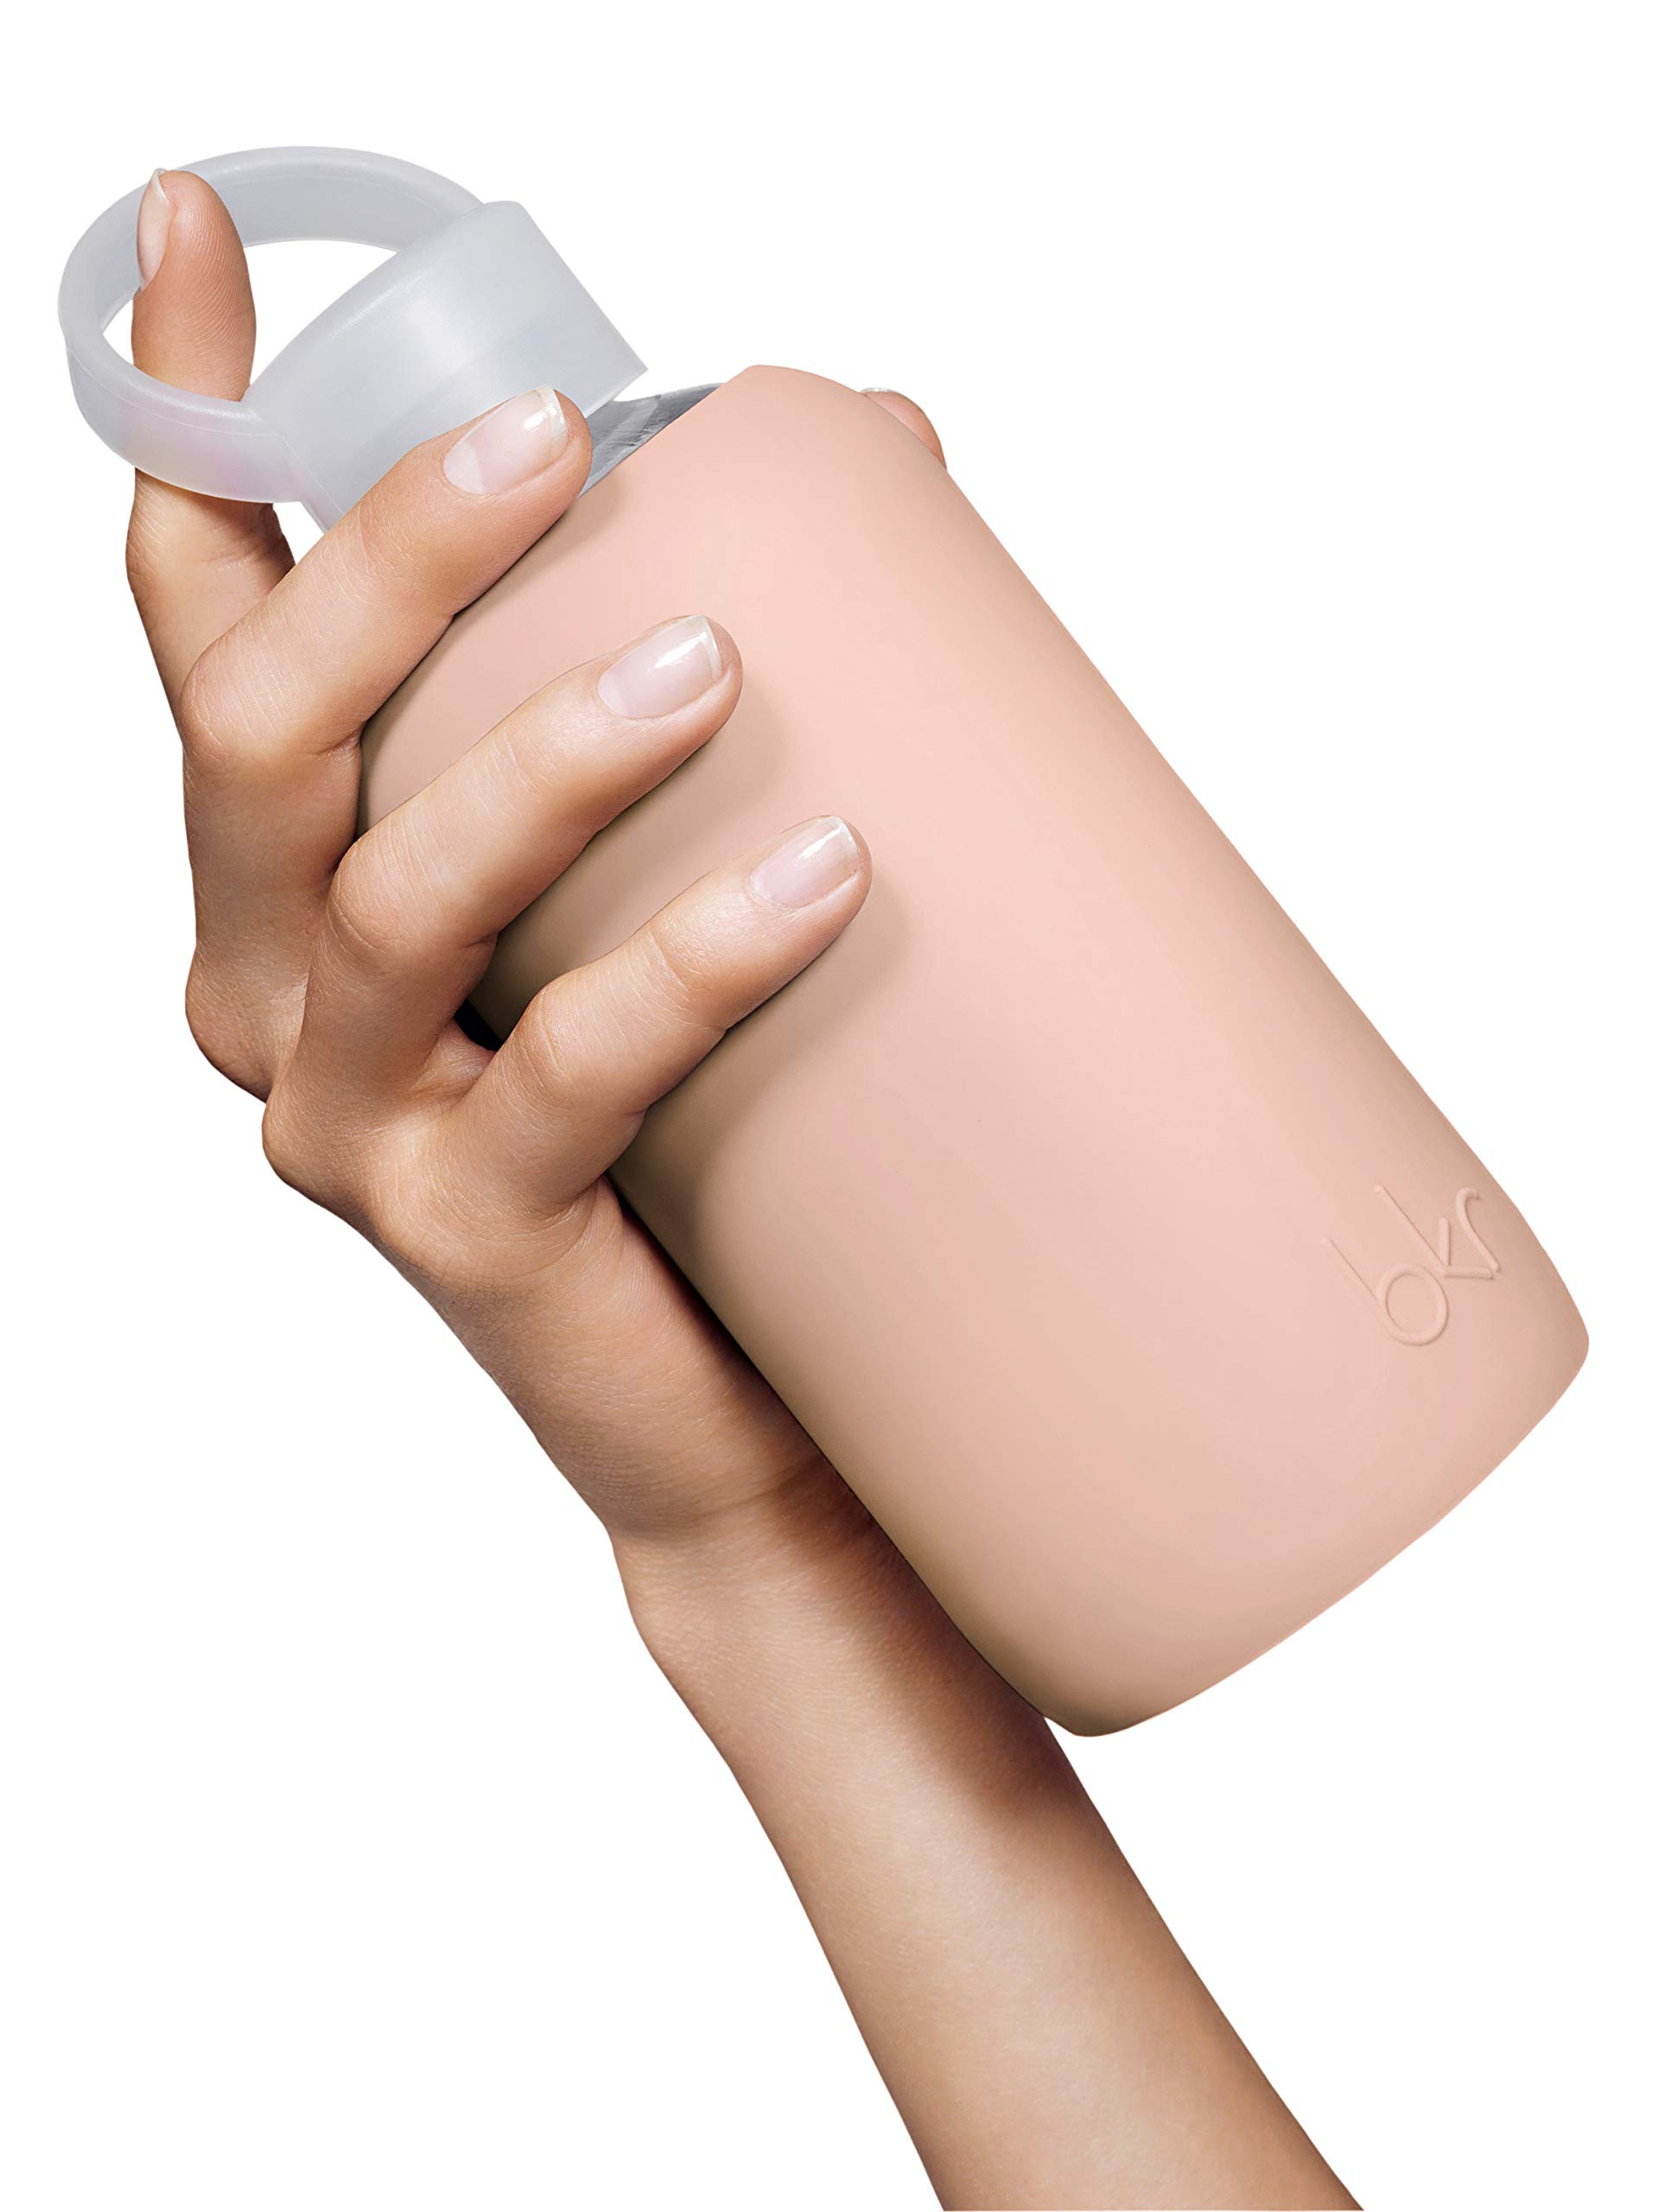 bkr BPA-Free Silicone Sleeve Glass Water Bottle, 16oz / 500 ml - Naked - Opaque Light Chocolate Milk Nude by bkr (Image #5)